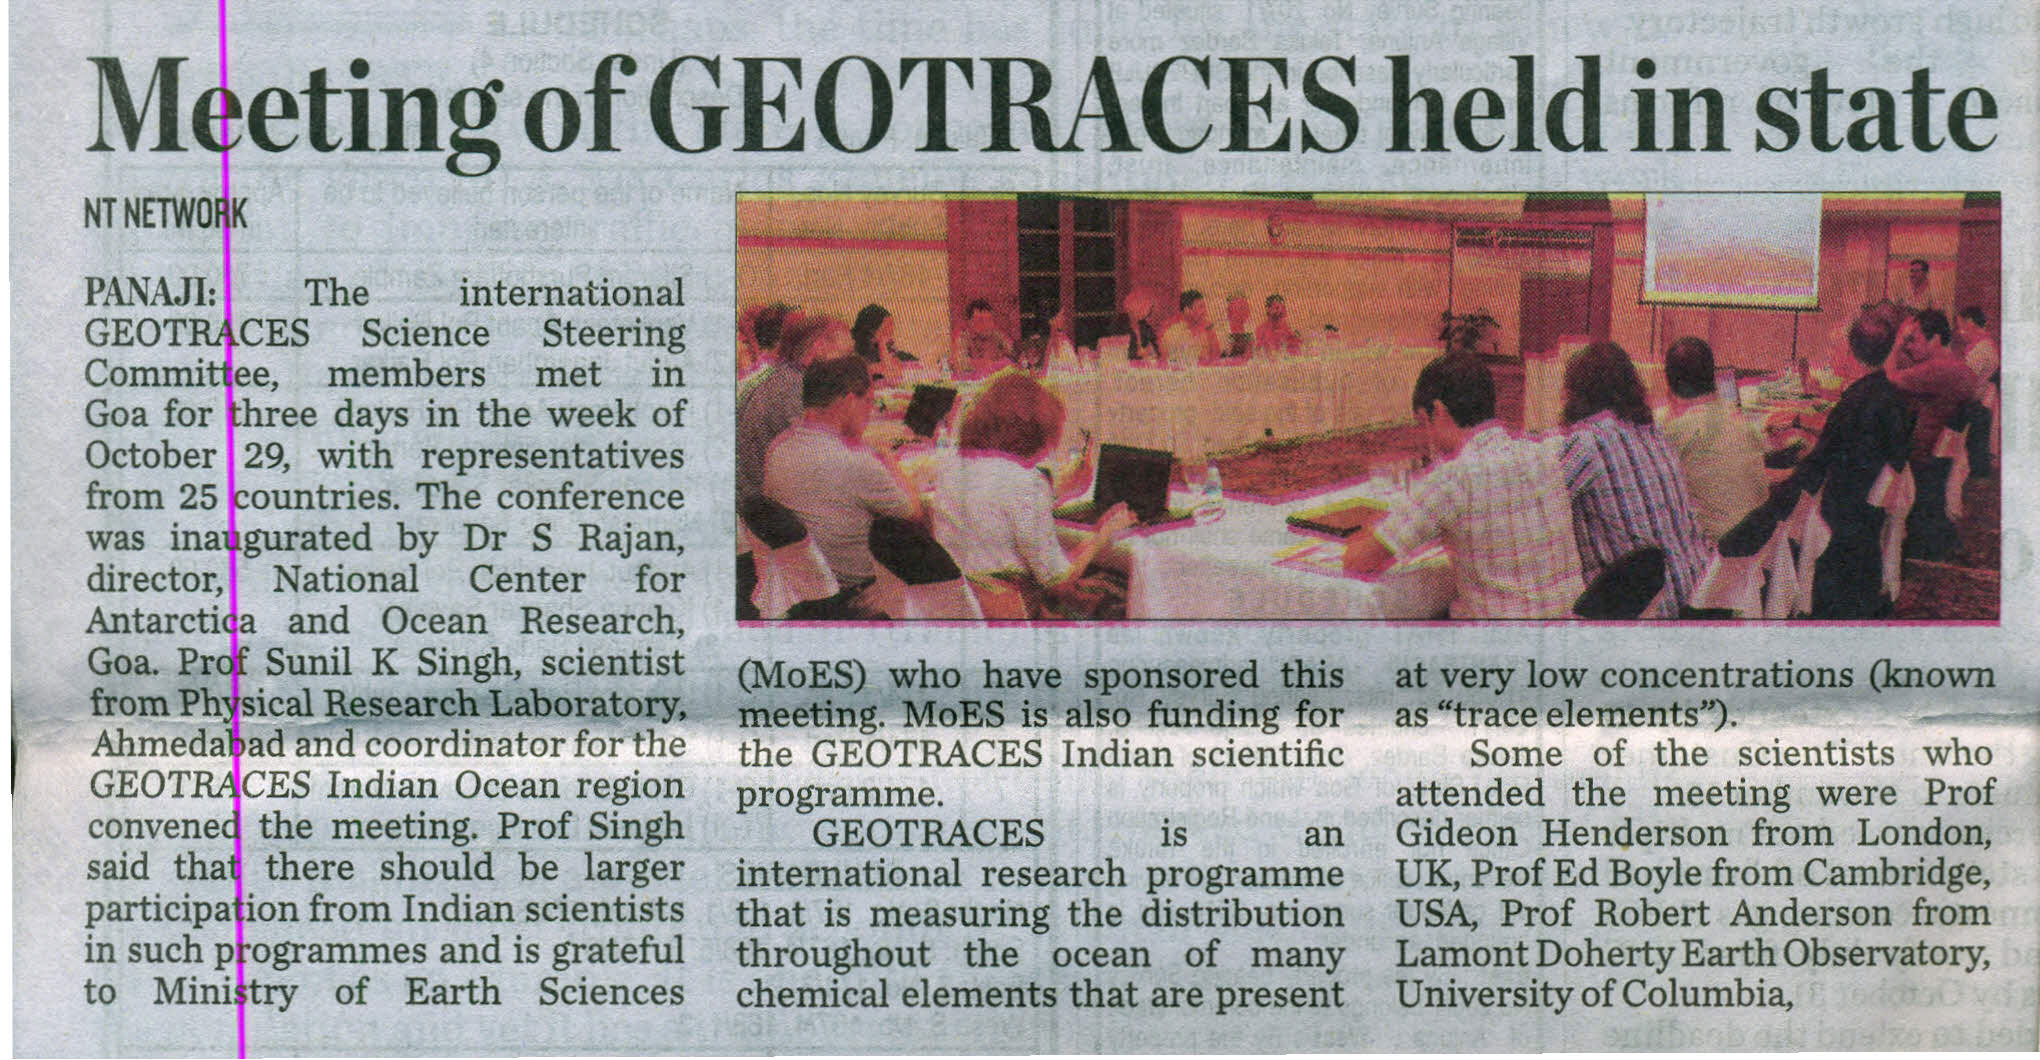 2012_Publicity_Meeting_of_GEOTRACES